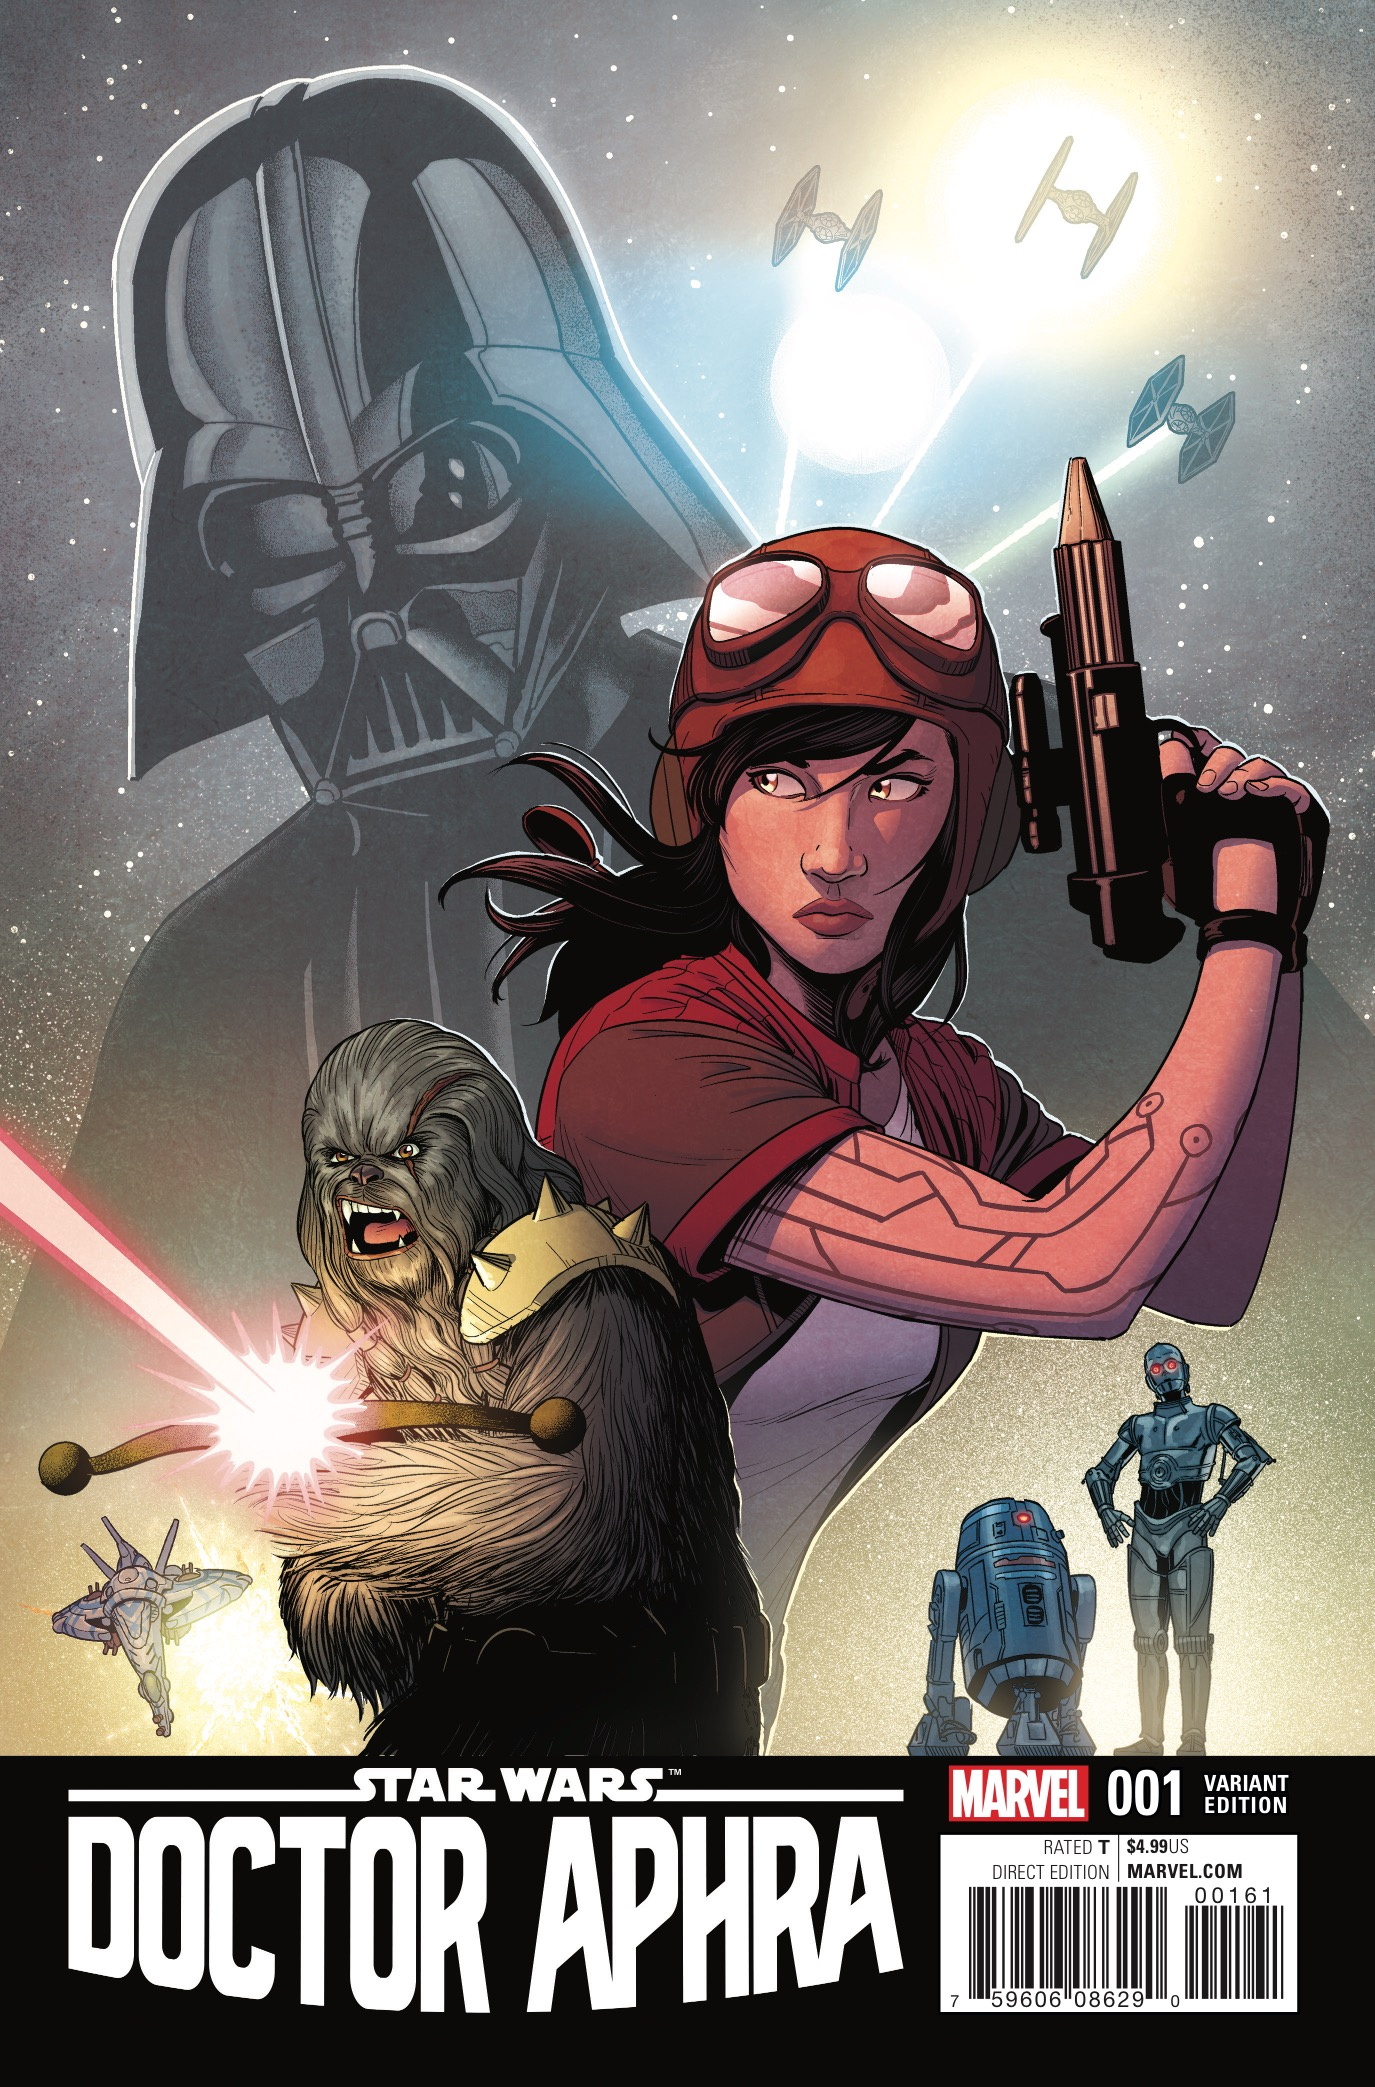 Star Wars: Doctor Aphra #1 Review